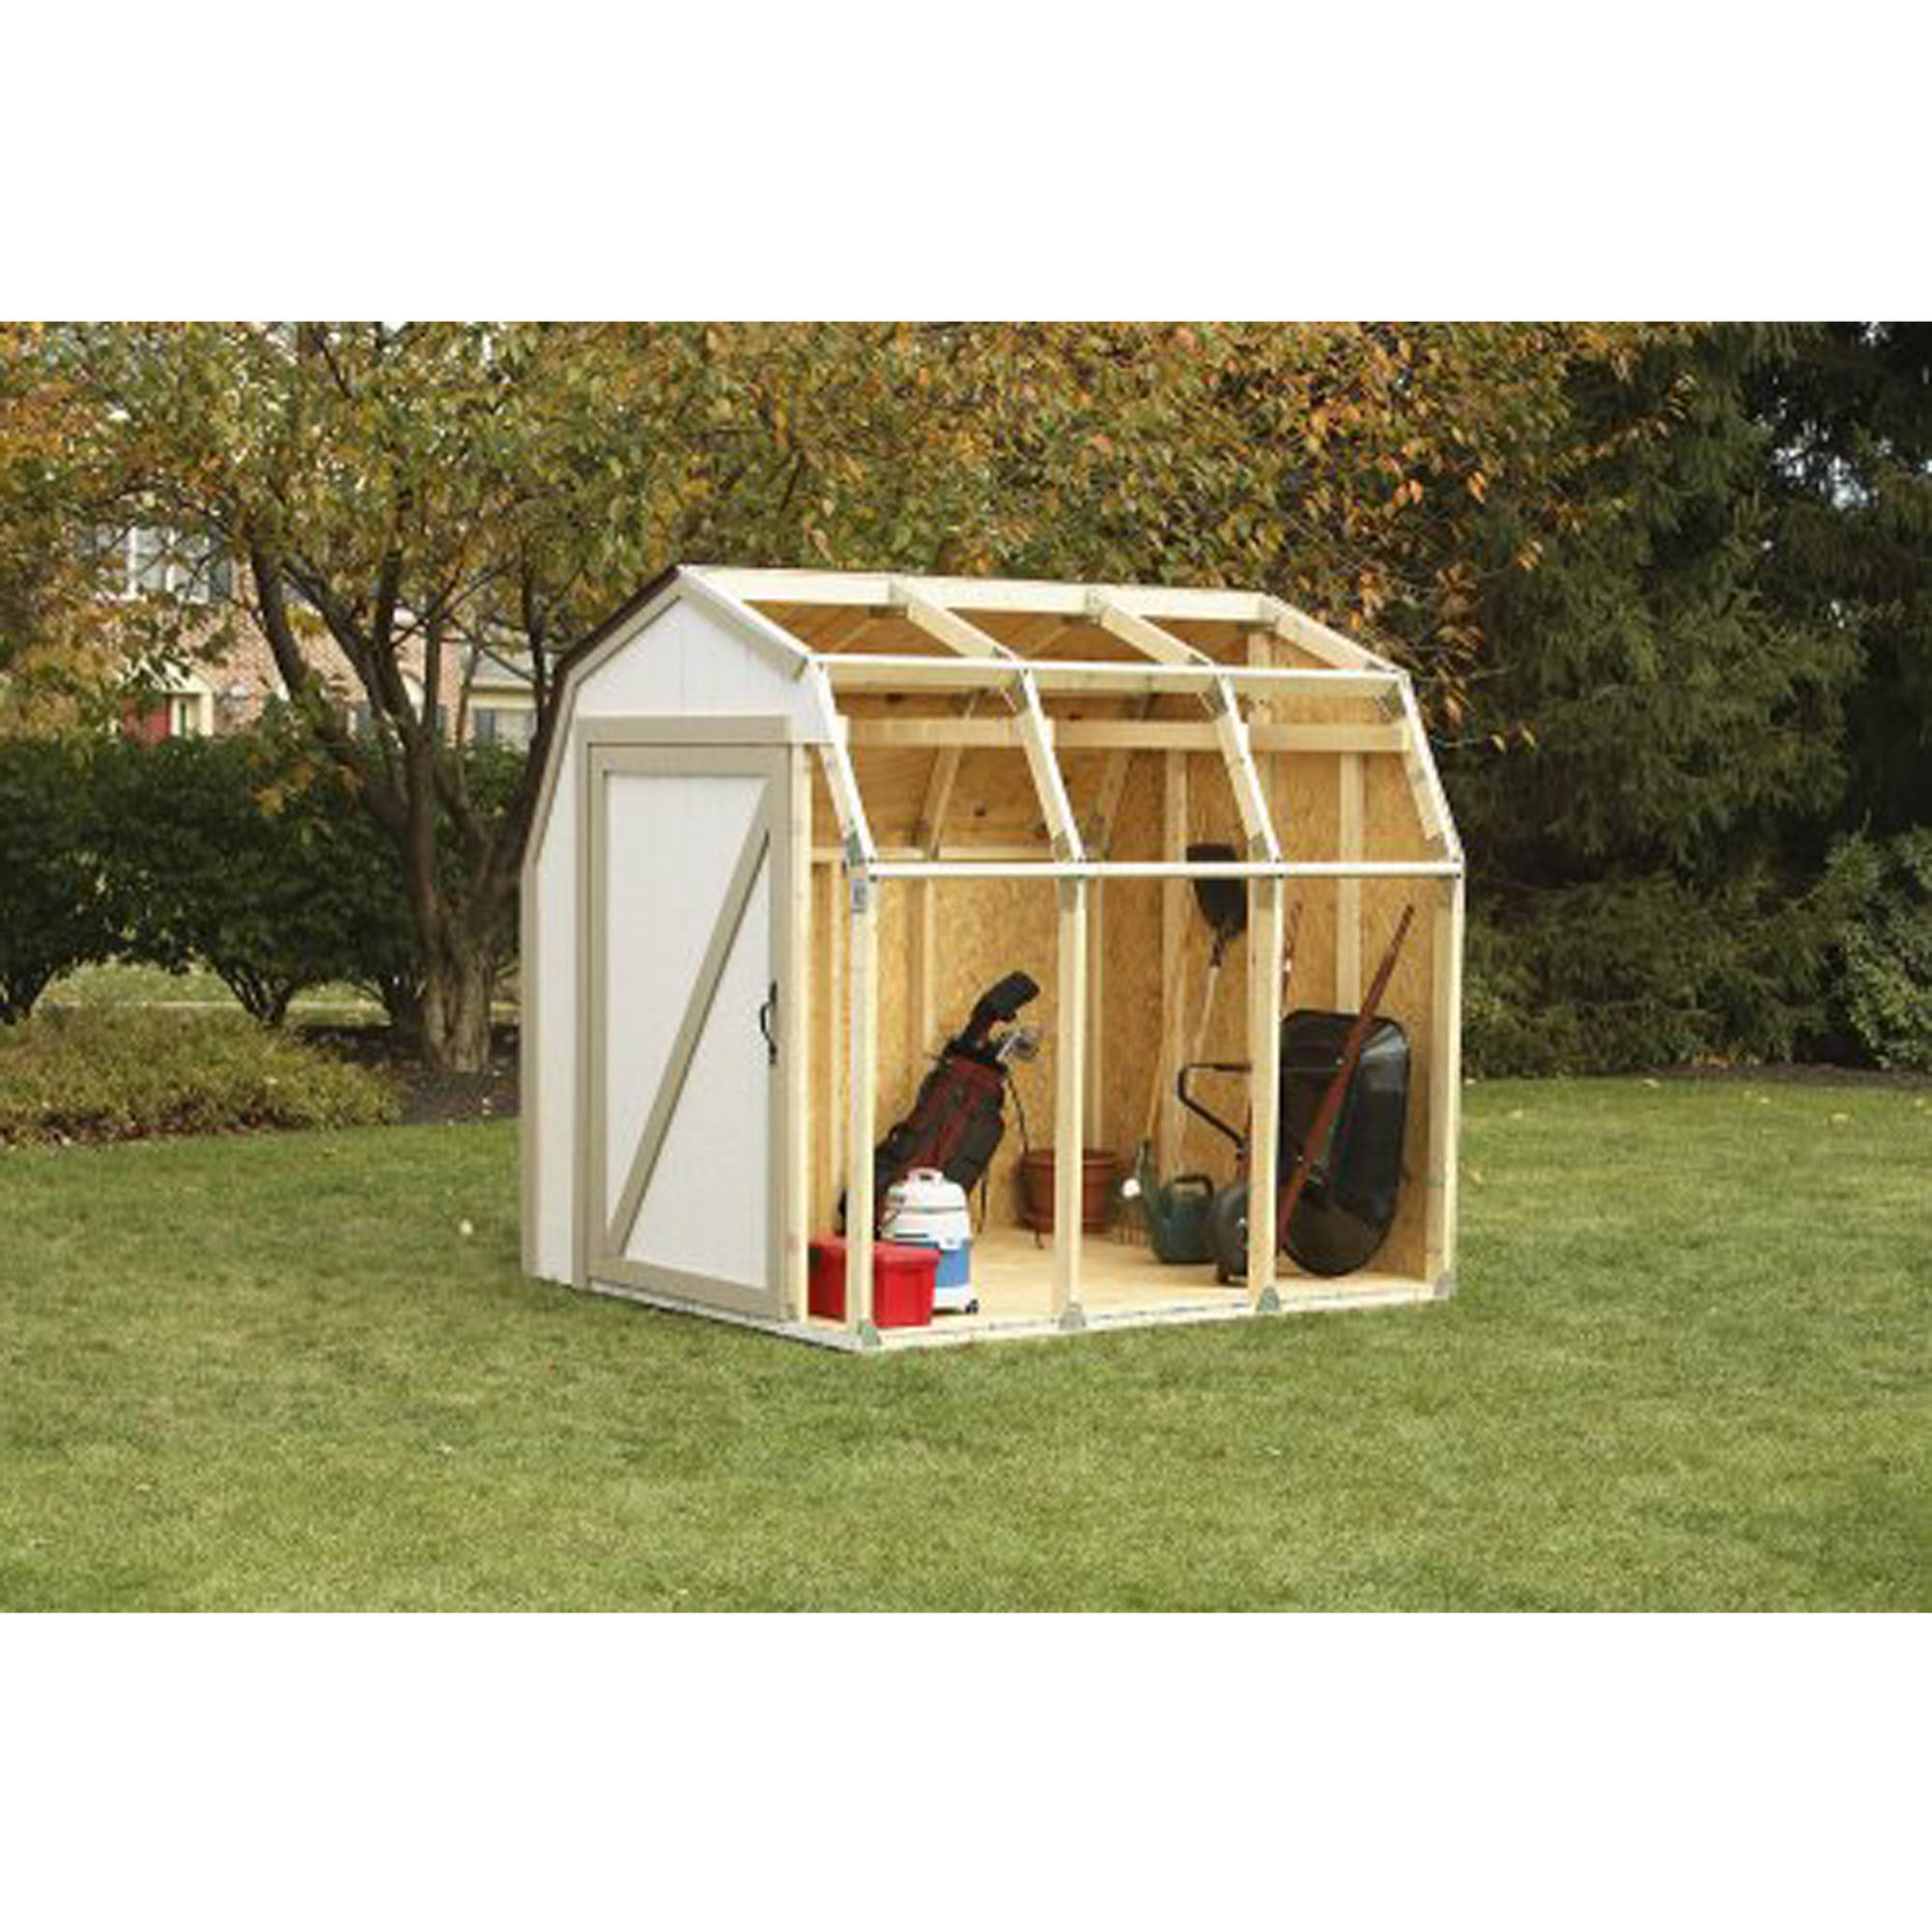 suncast outdoor sheds amazon garden blowmolded shed dp vertical cubic foot com storage resin